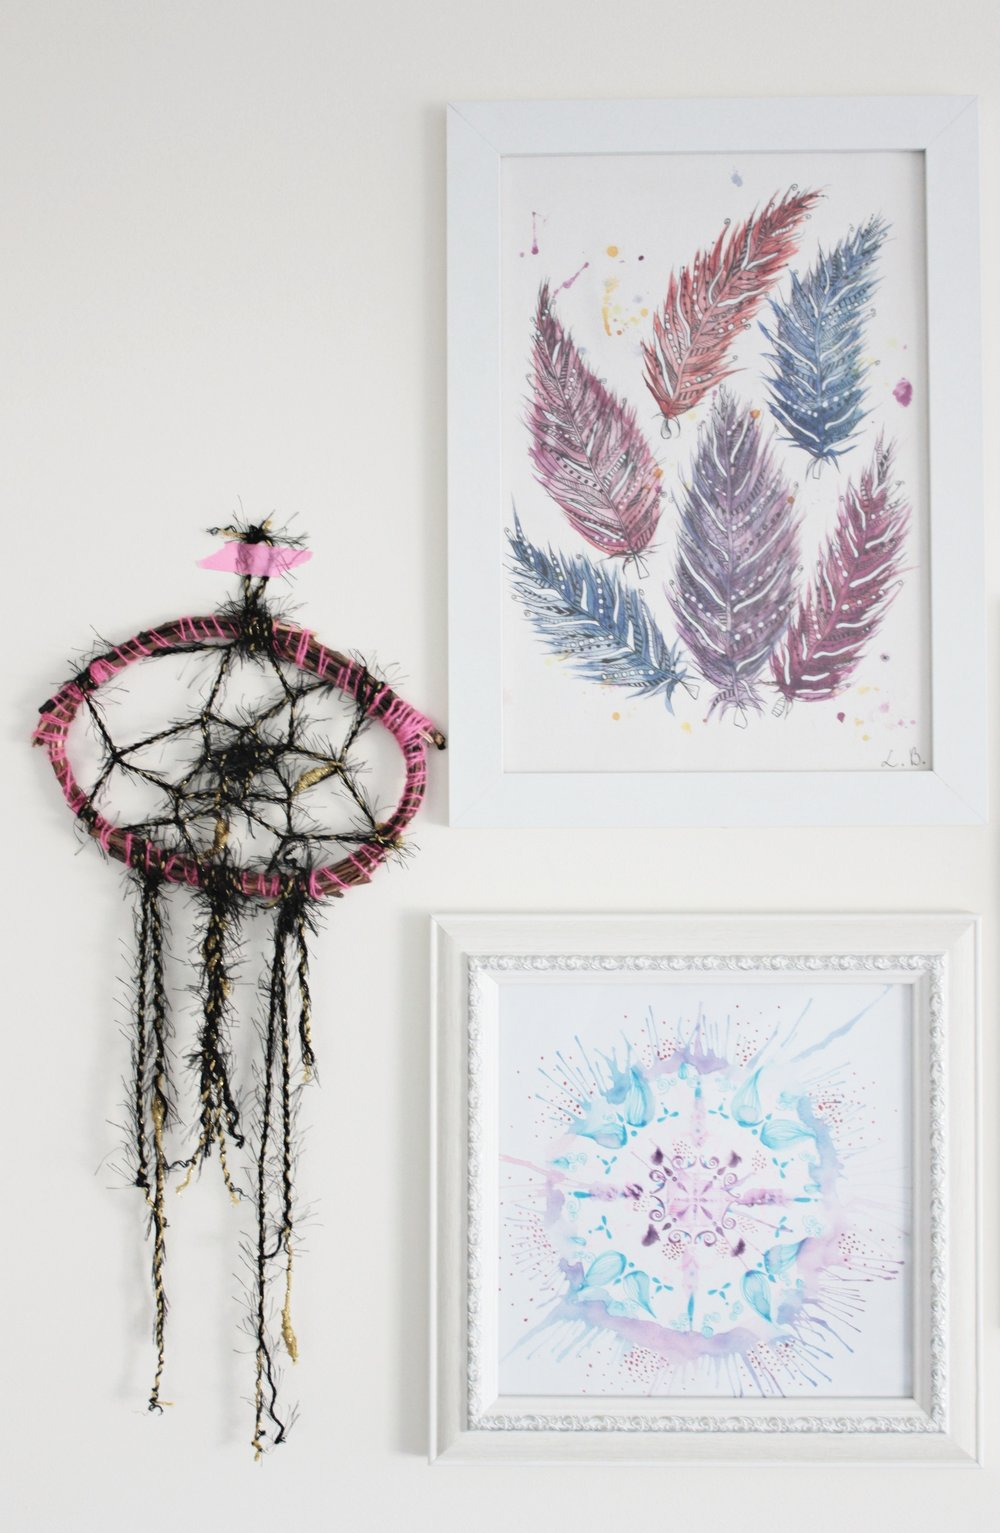 A dream catcher and framed artworks as a wall decoration idea